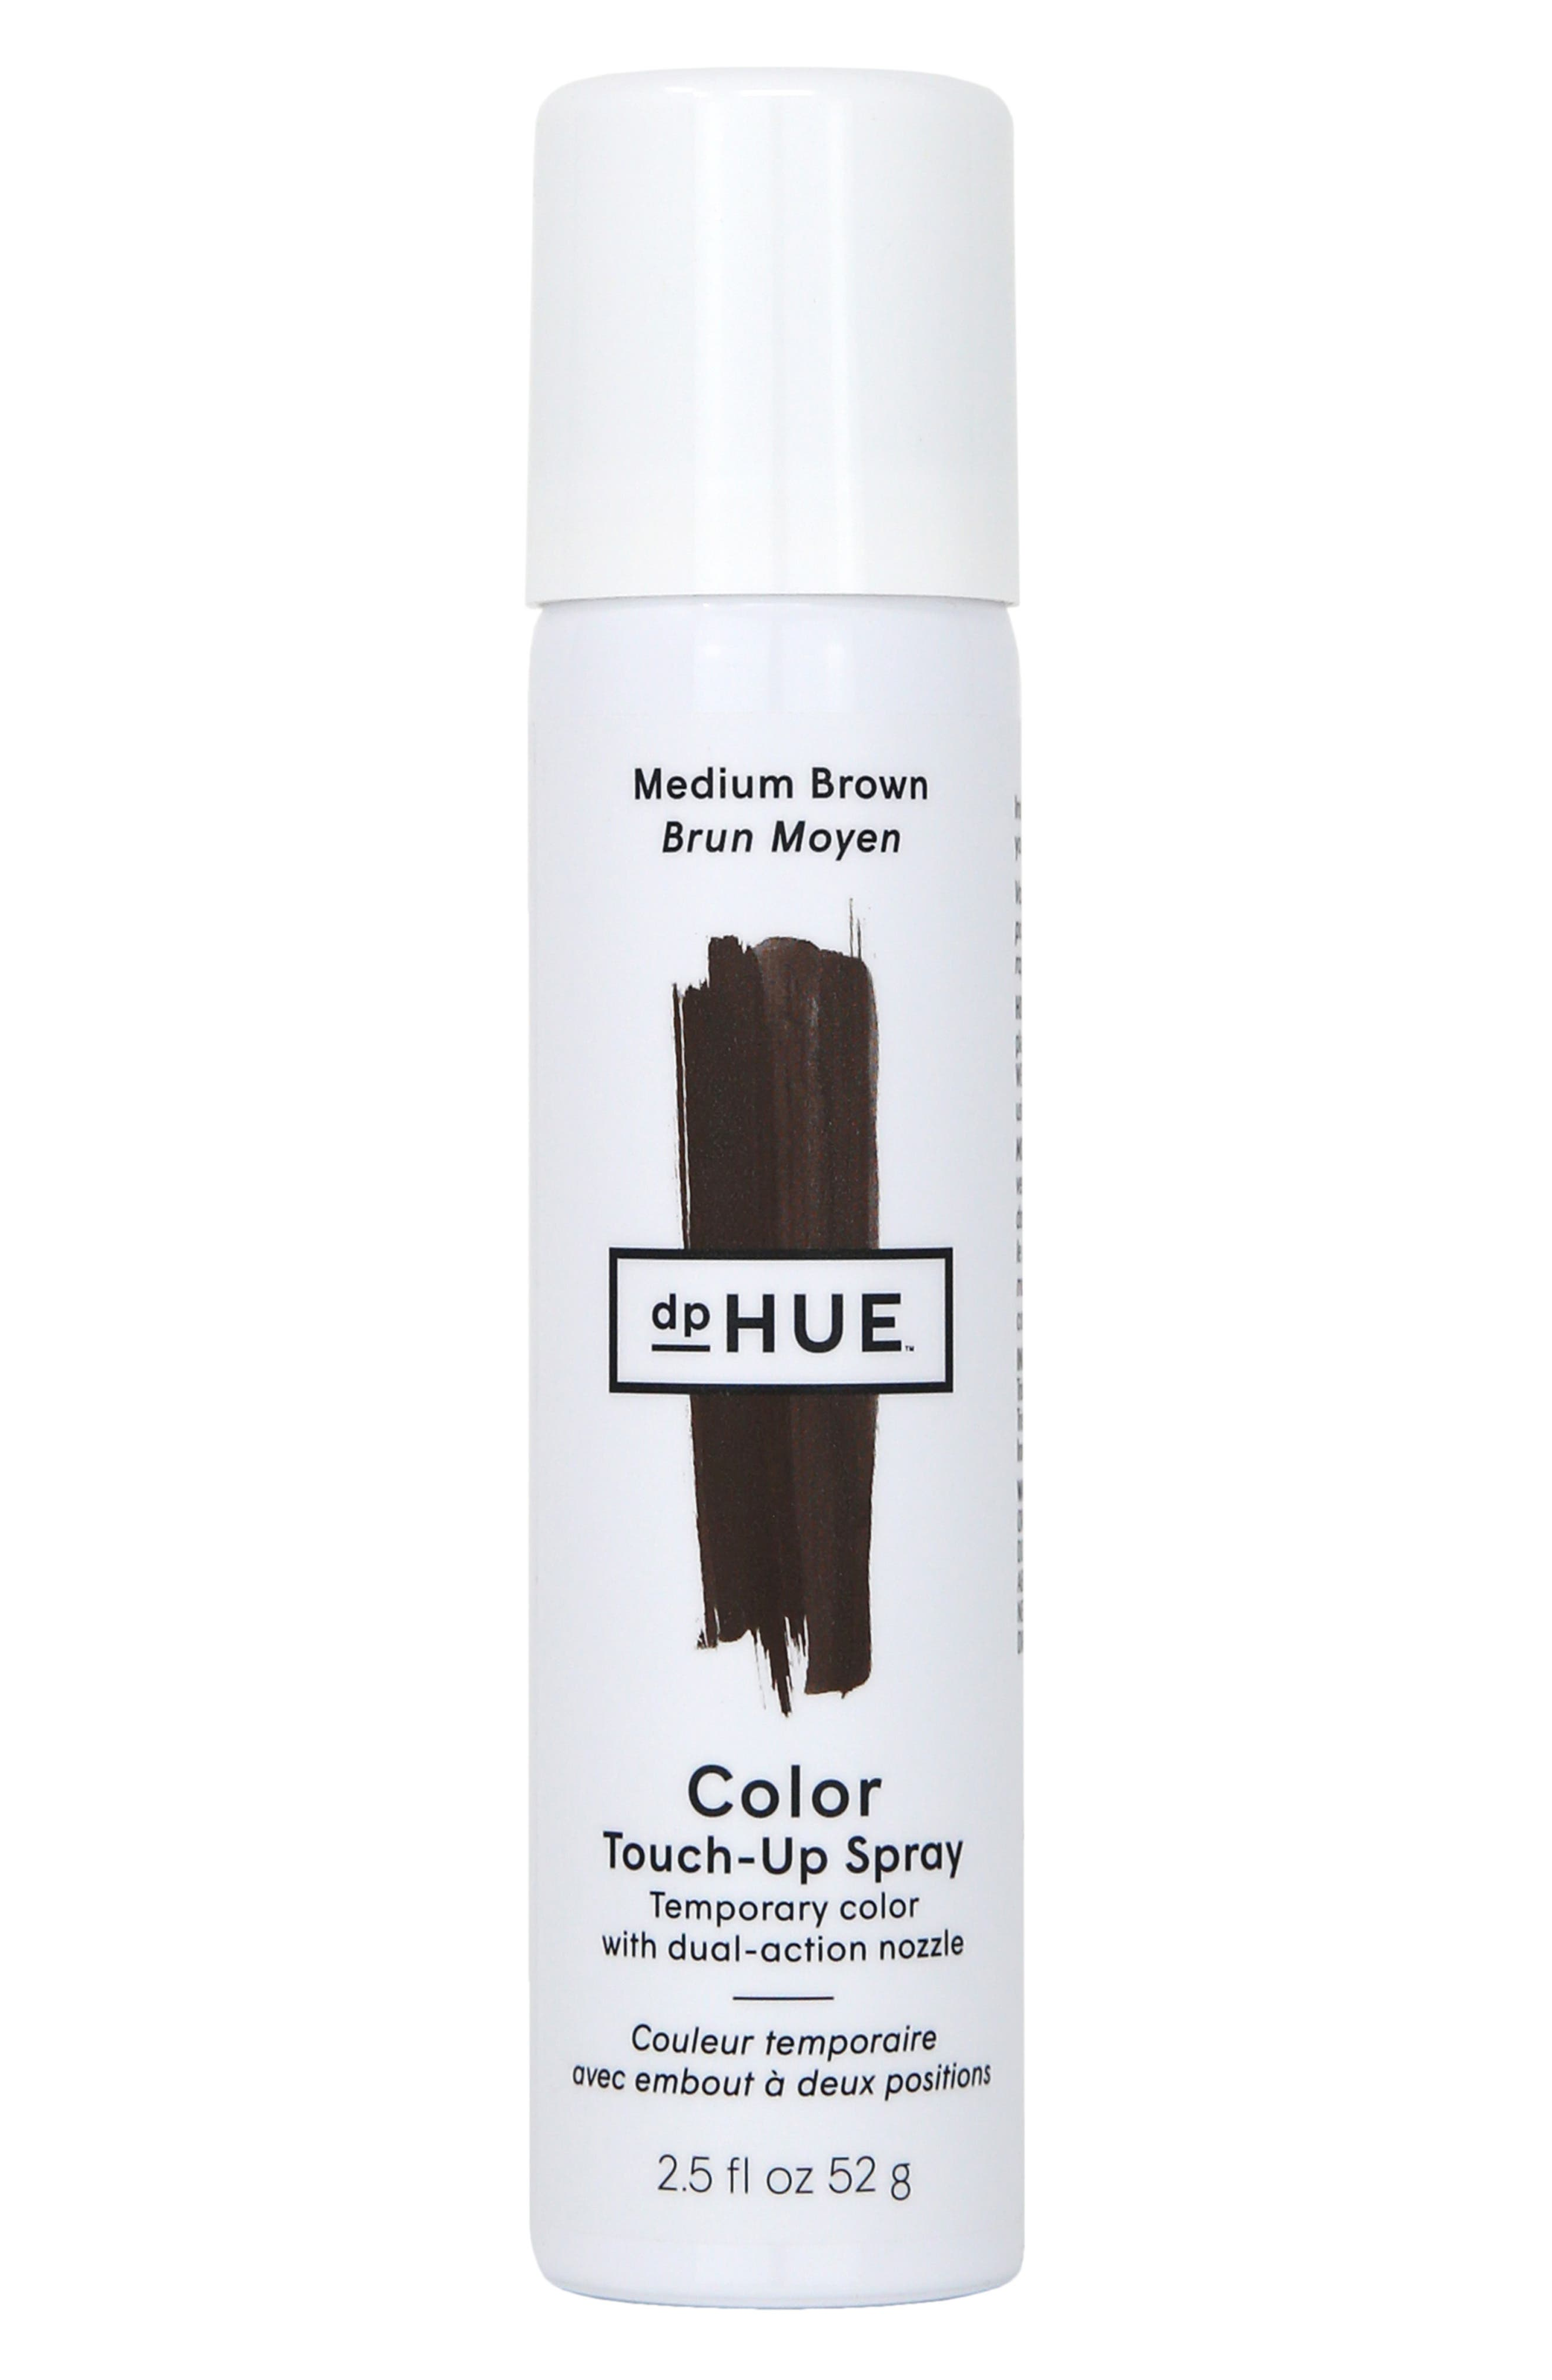 Color Touch-Up Temporary Color Spray